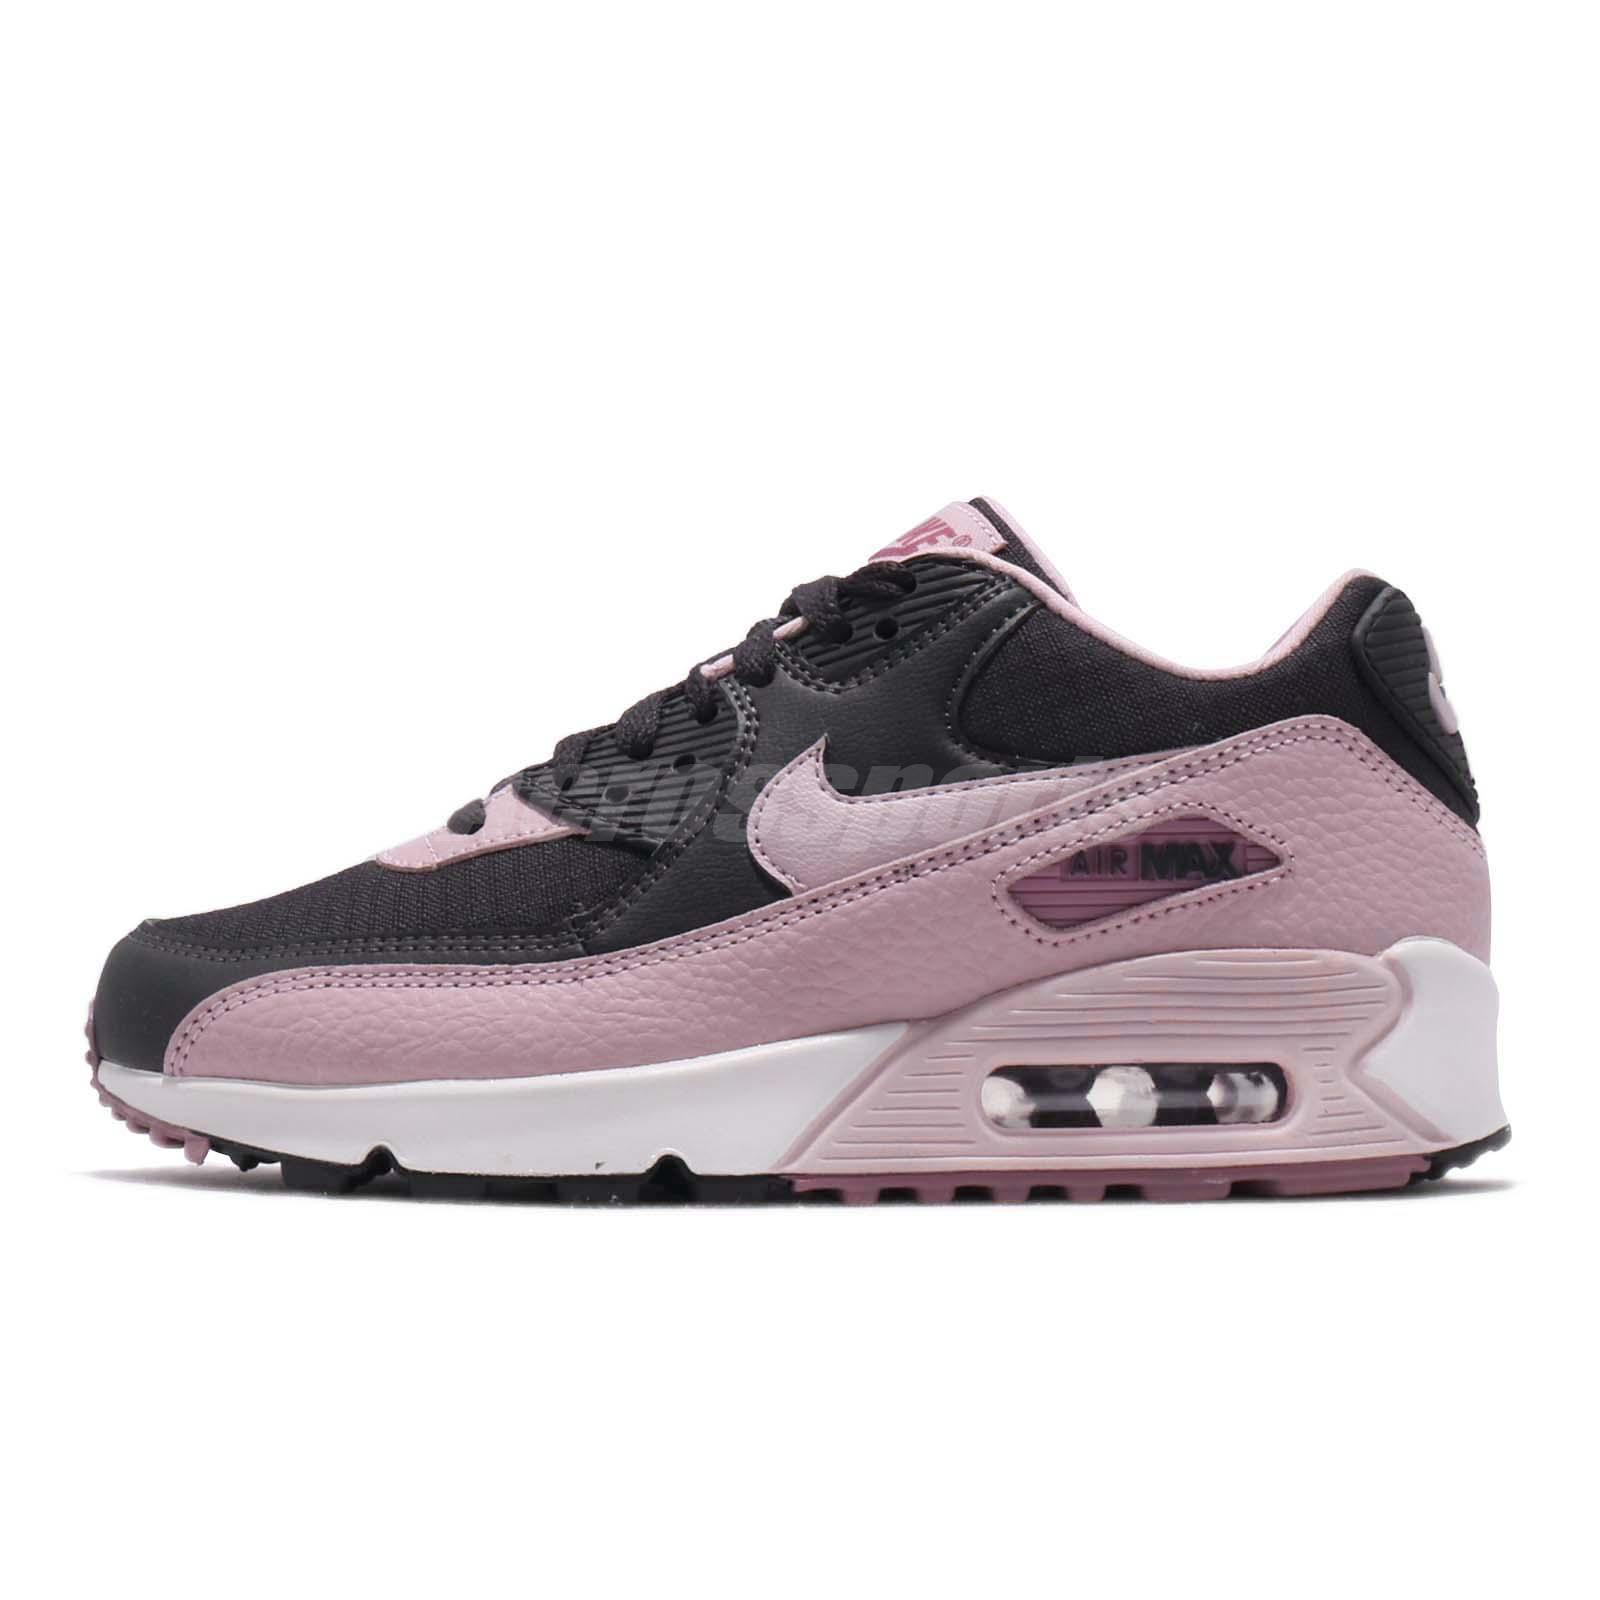 new concept c7816 e5d1b Details about Nike Wmns Air Max 90 Plum Chalk Pink Grey Women Running Shoes  Sneaker 325213-059